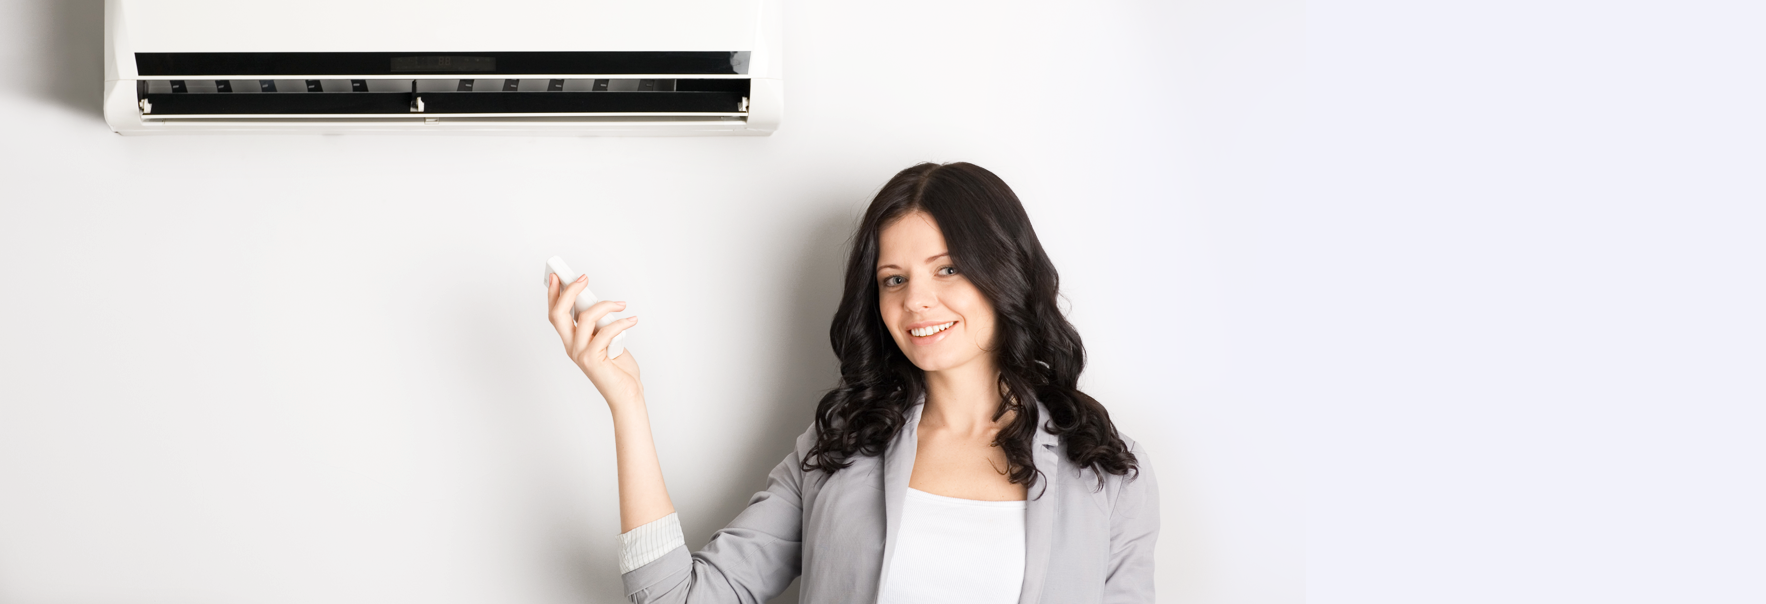 Airconditioning Perth Installation Service Repairs